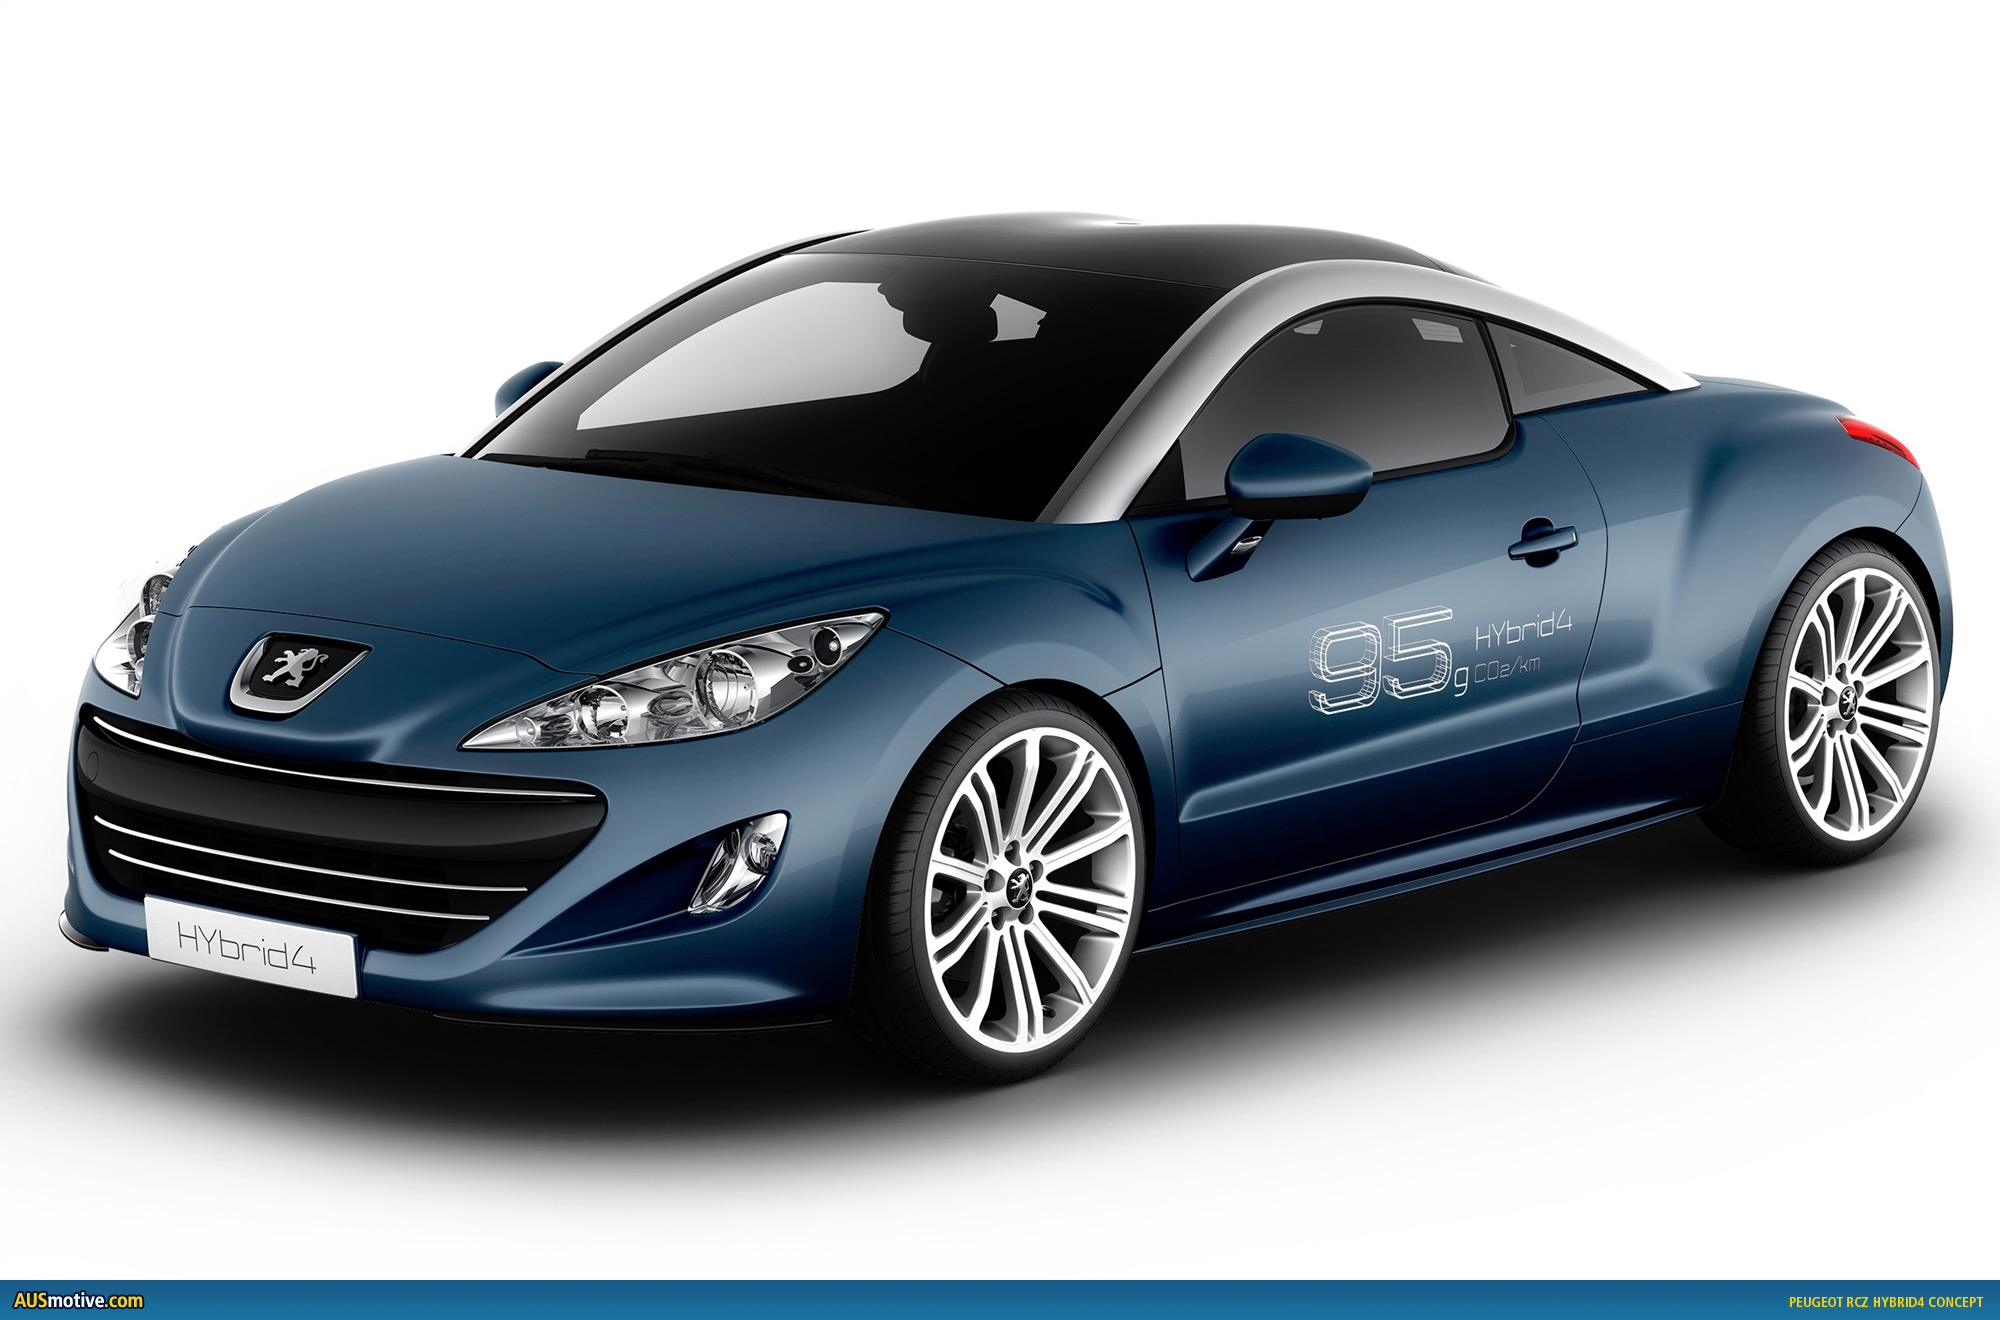 Want a piece of the green market too with this rcz hybrid4 concept